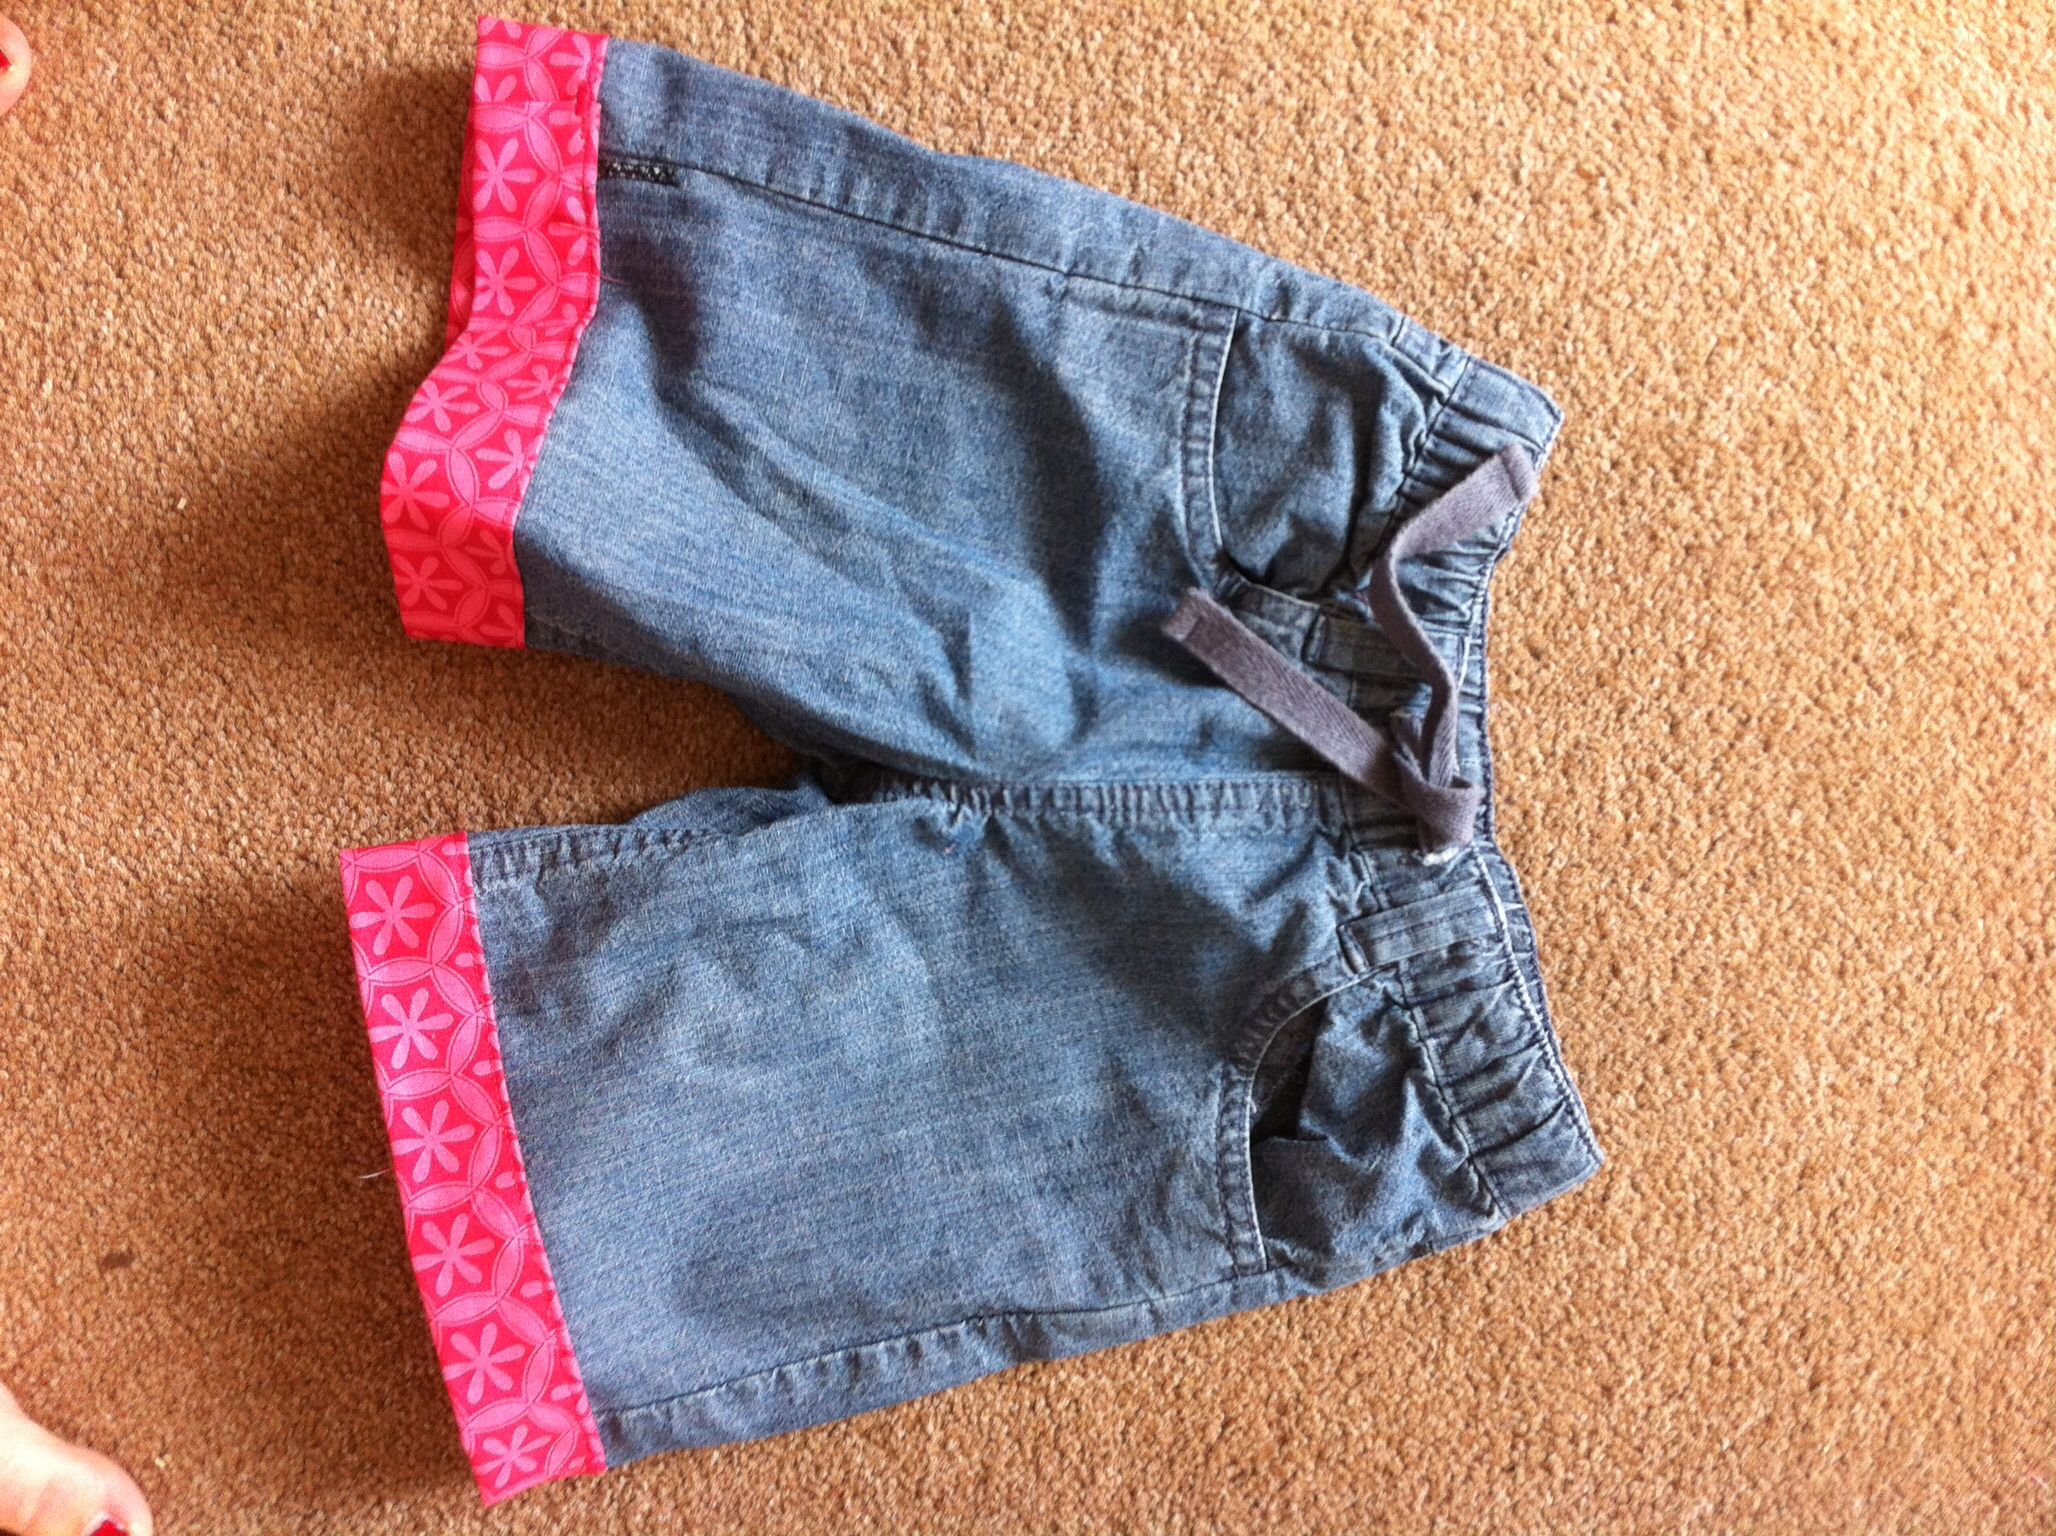 Cut off some trousers to make shorts for the little lady